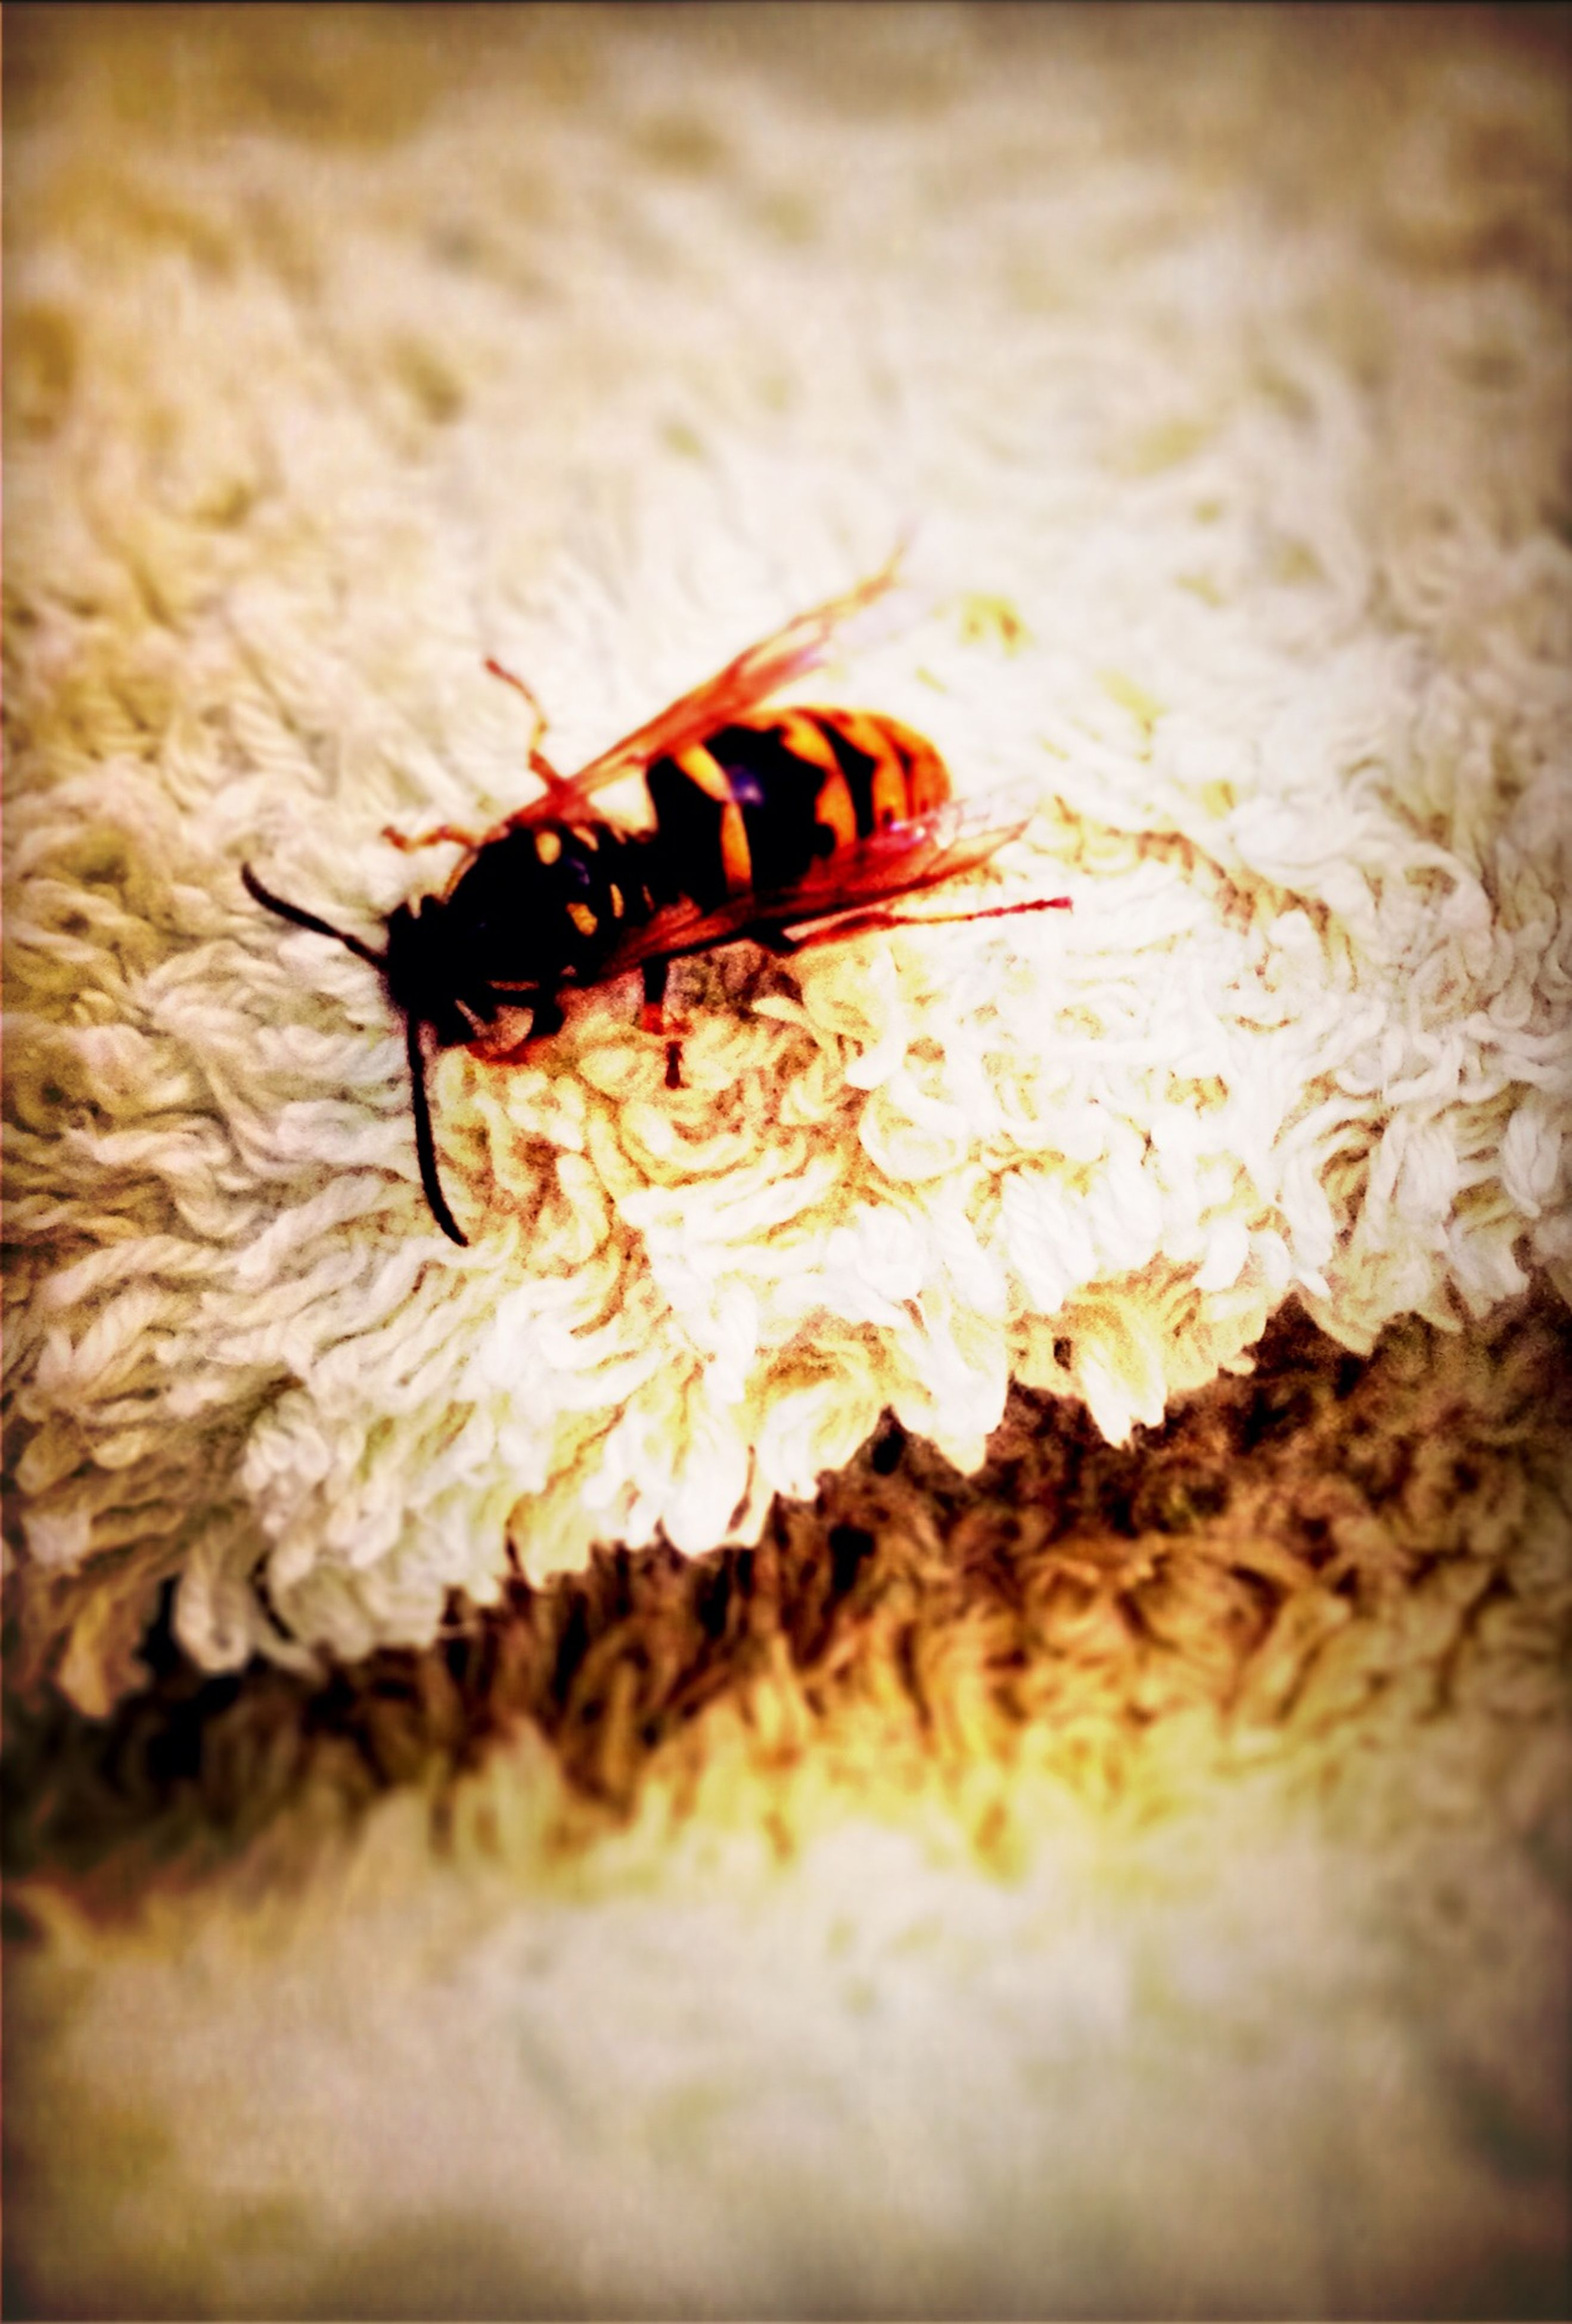 insect, selective focus, close-up, animal themes, one animal, indoors, high angle view, freshness, wildlife, flower, animals in the wild, fragility, nature, petal, no people, bee, table, dead animal, day, crab